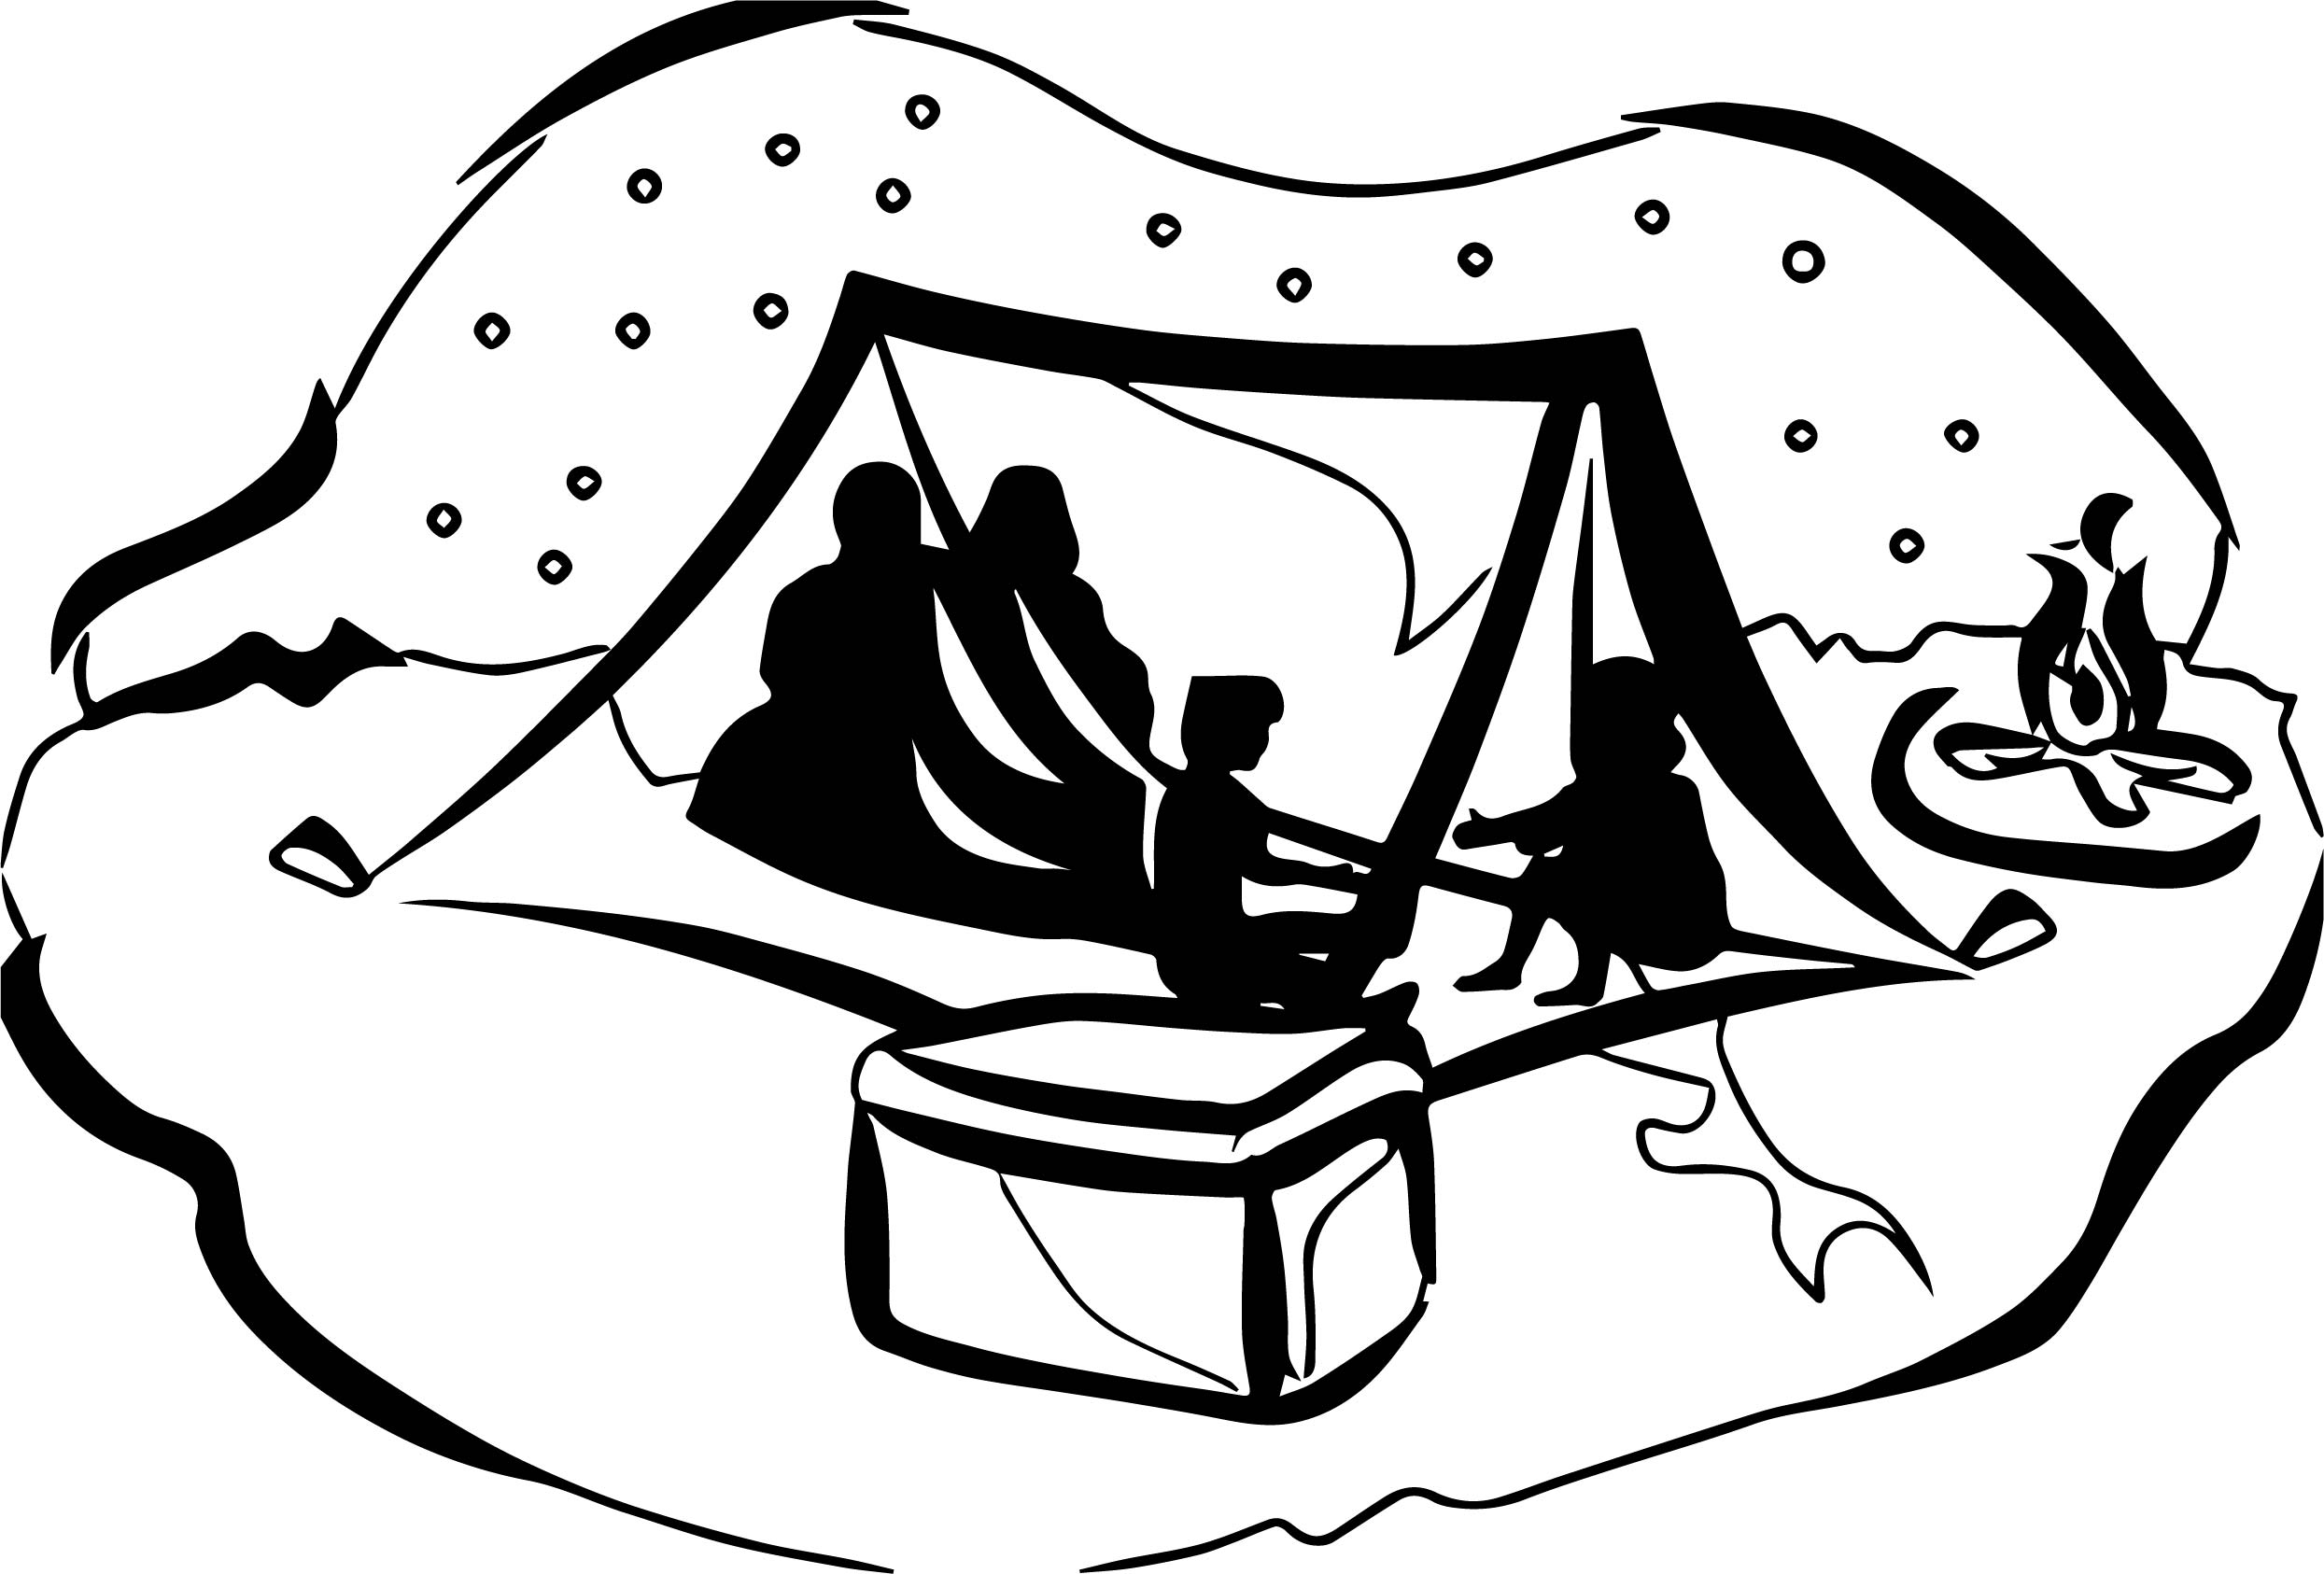 Camping black and white clipart svg black and white download Camping Clipart Black And White | Free download best Camping Clipart ... svg black and white download